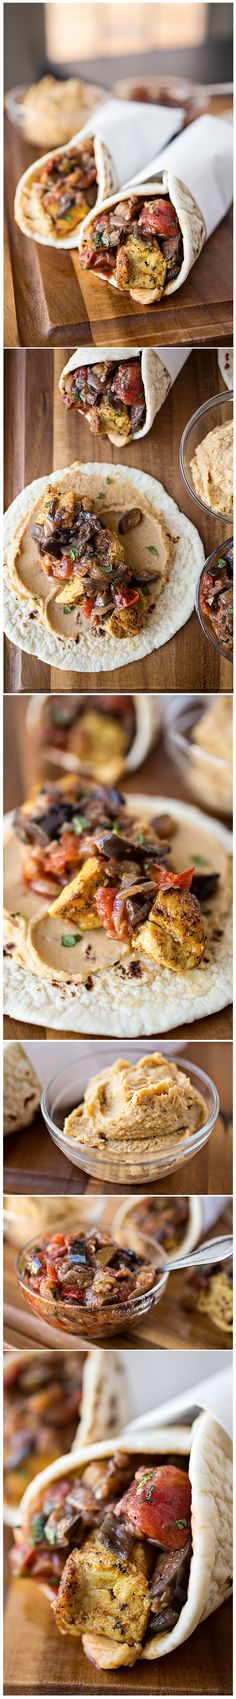 Spiced Moroccan Chicken Wrap